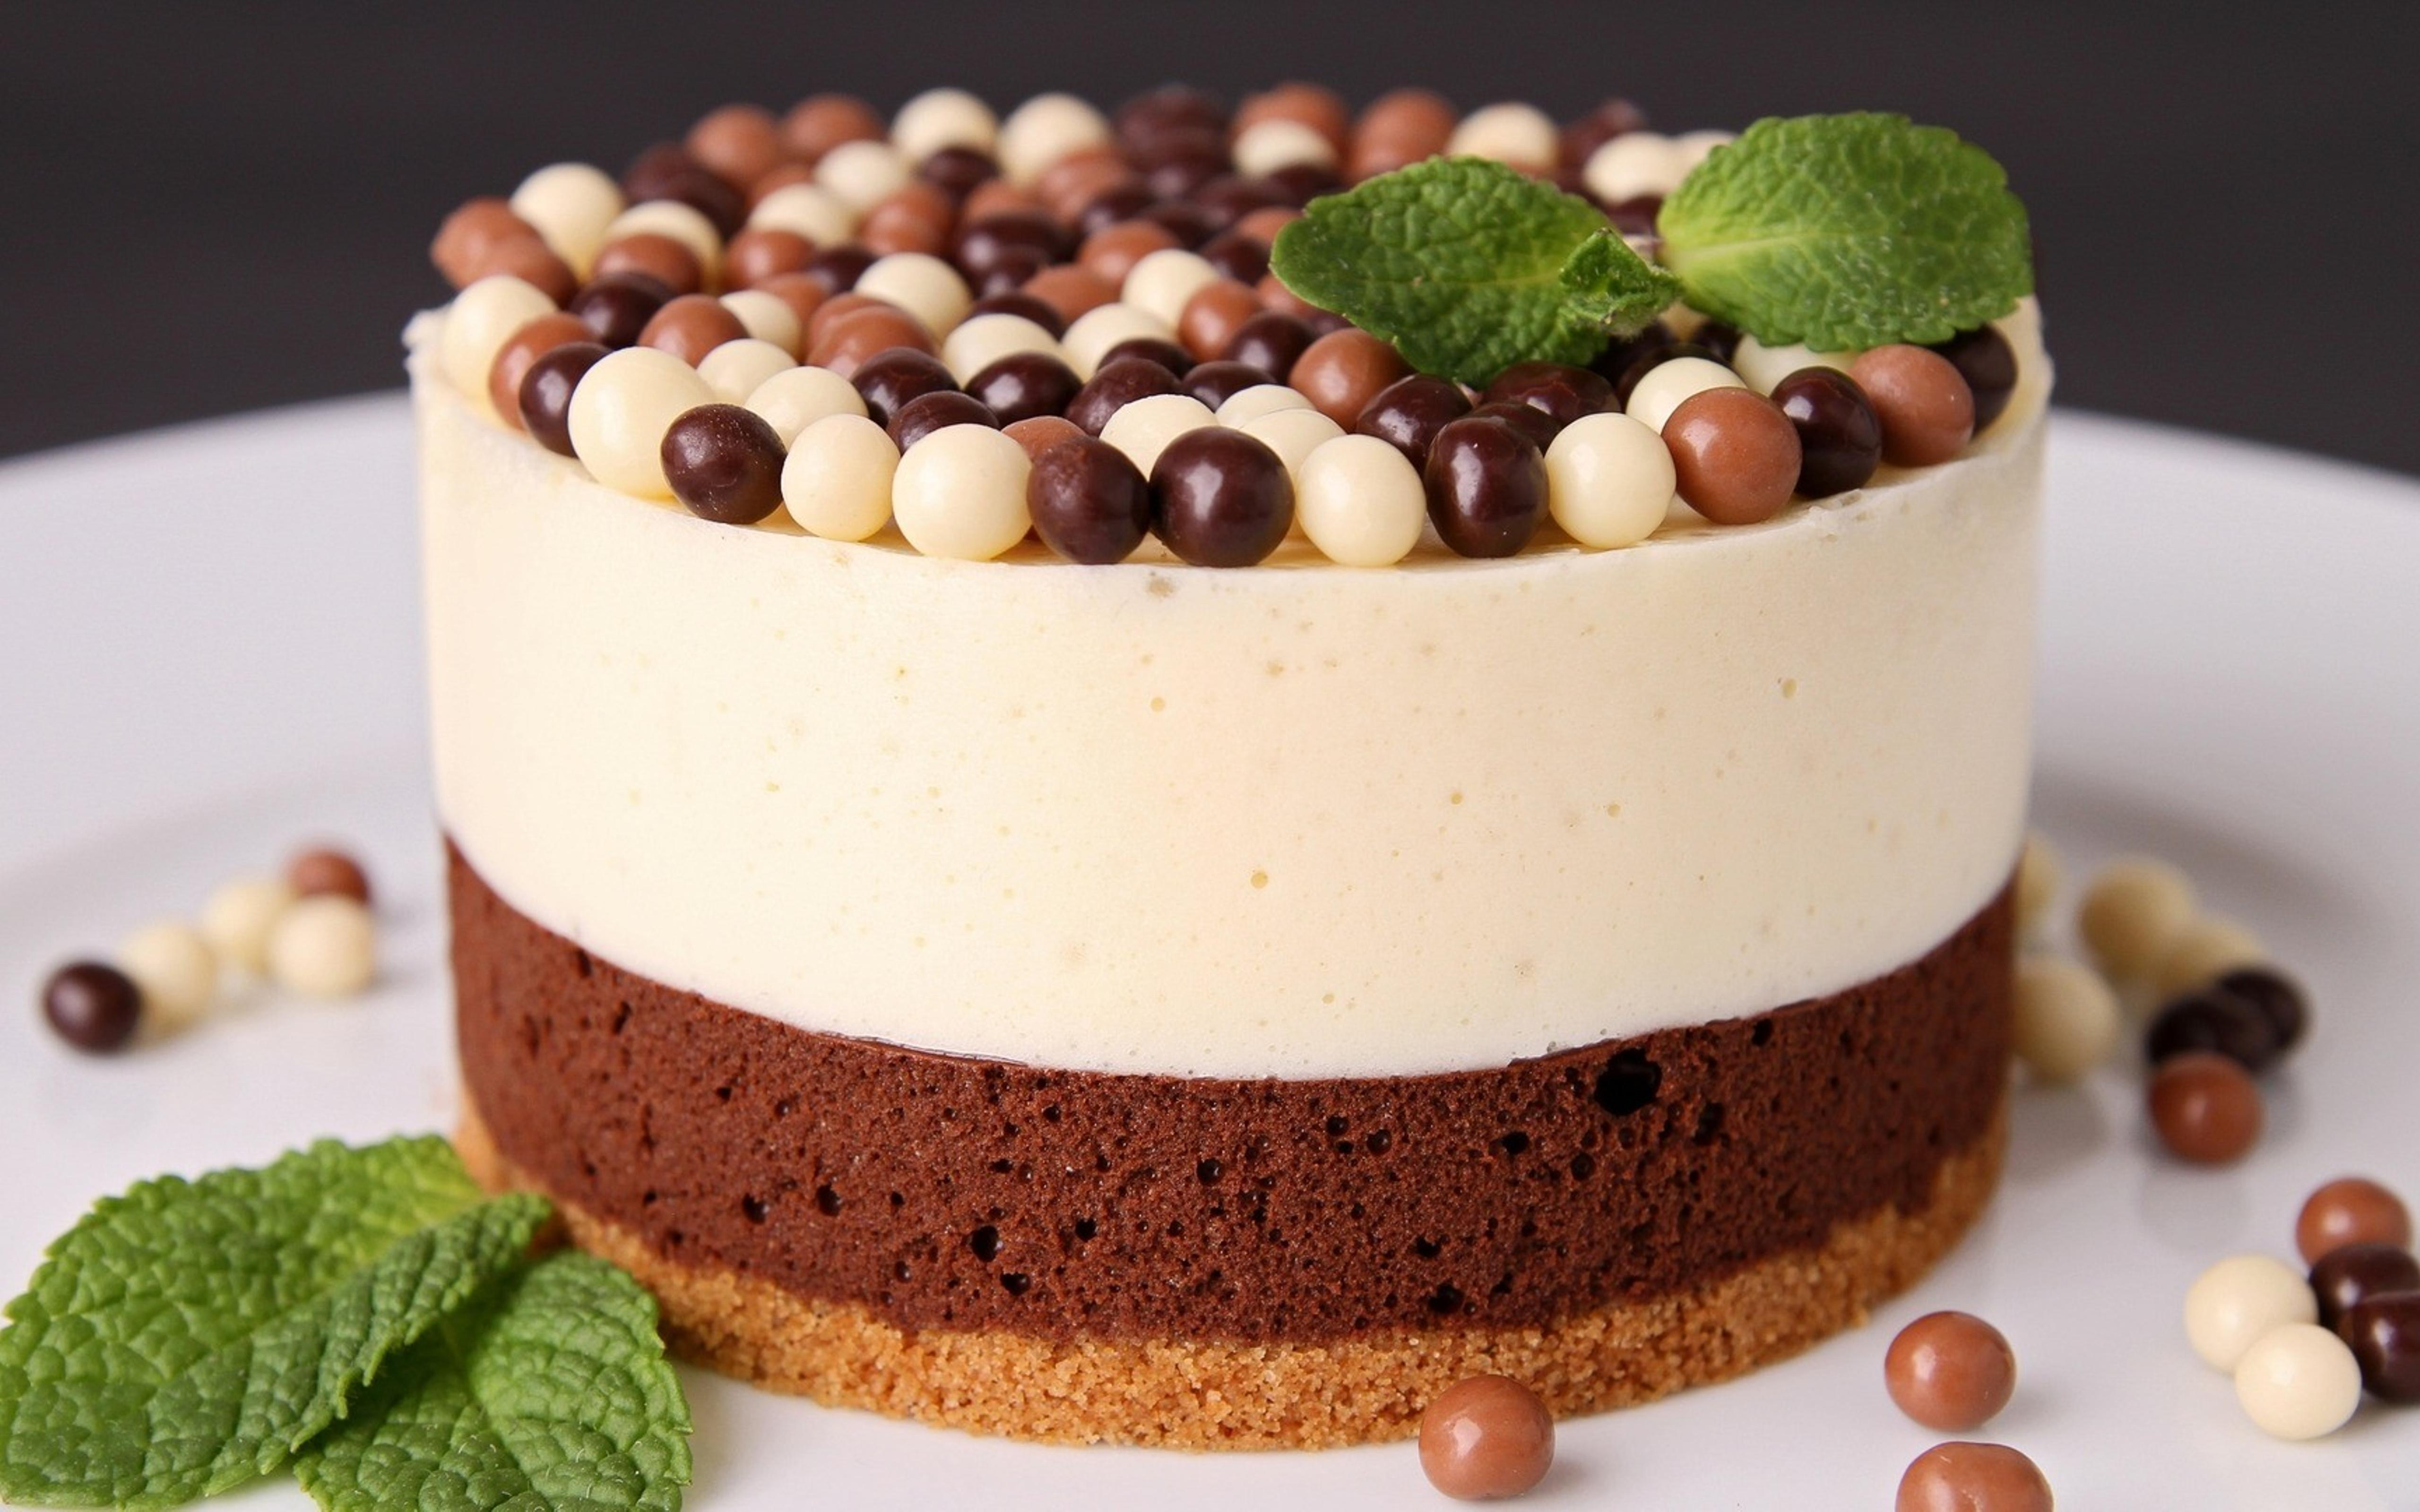 Happy Birthday with a delicious chocolate cake Wallpaper Download